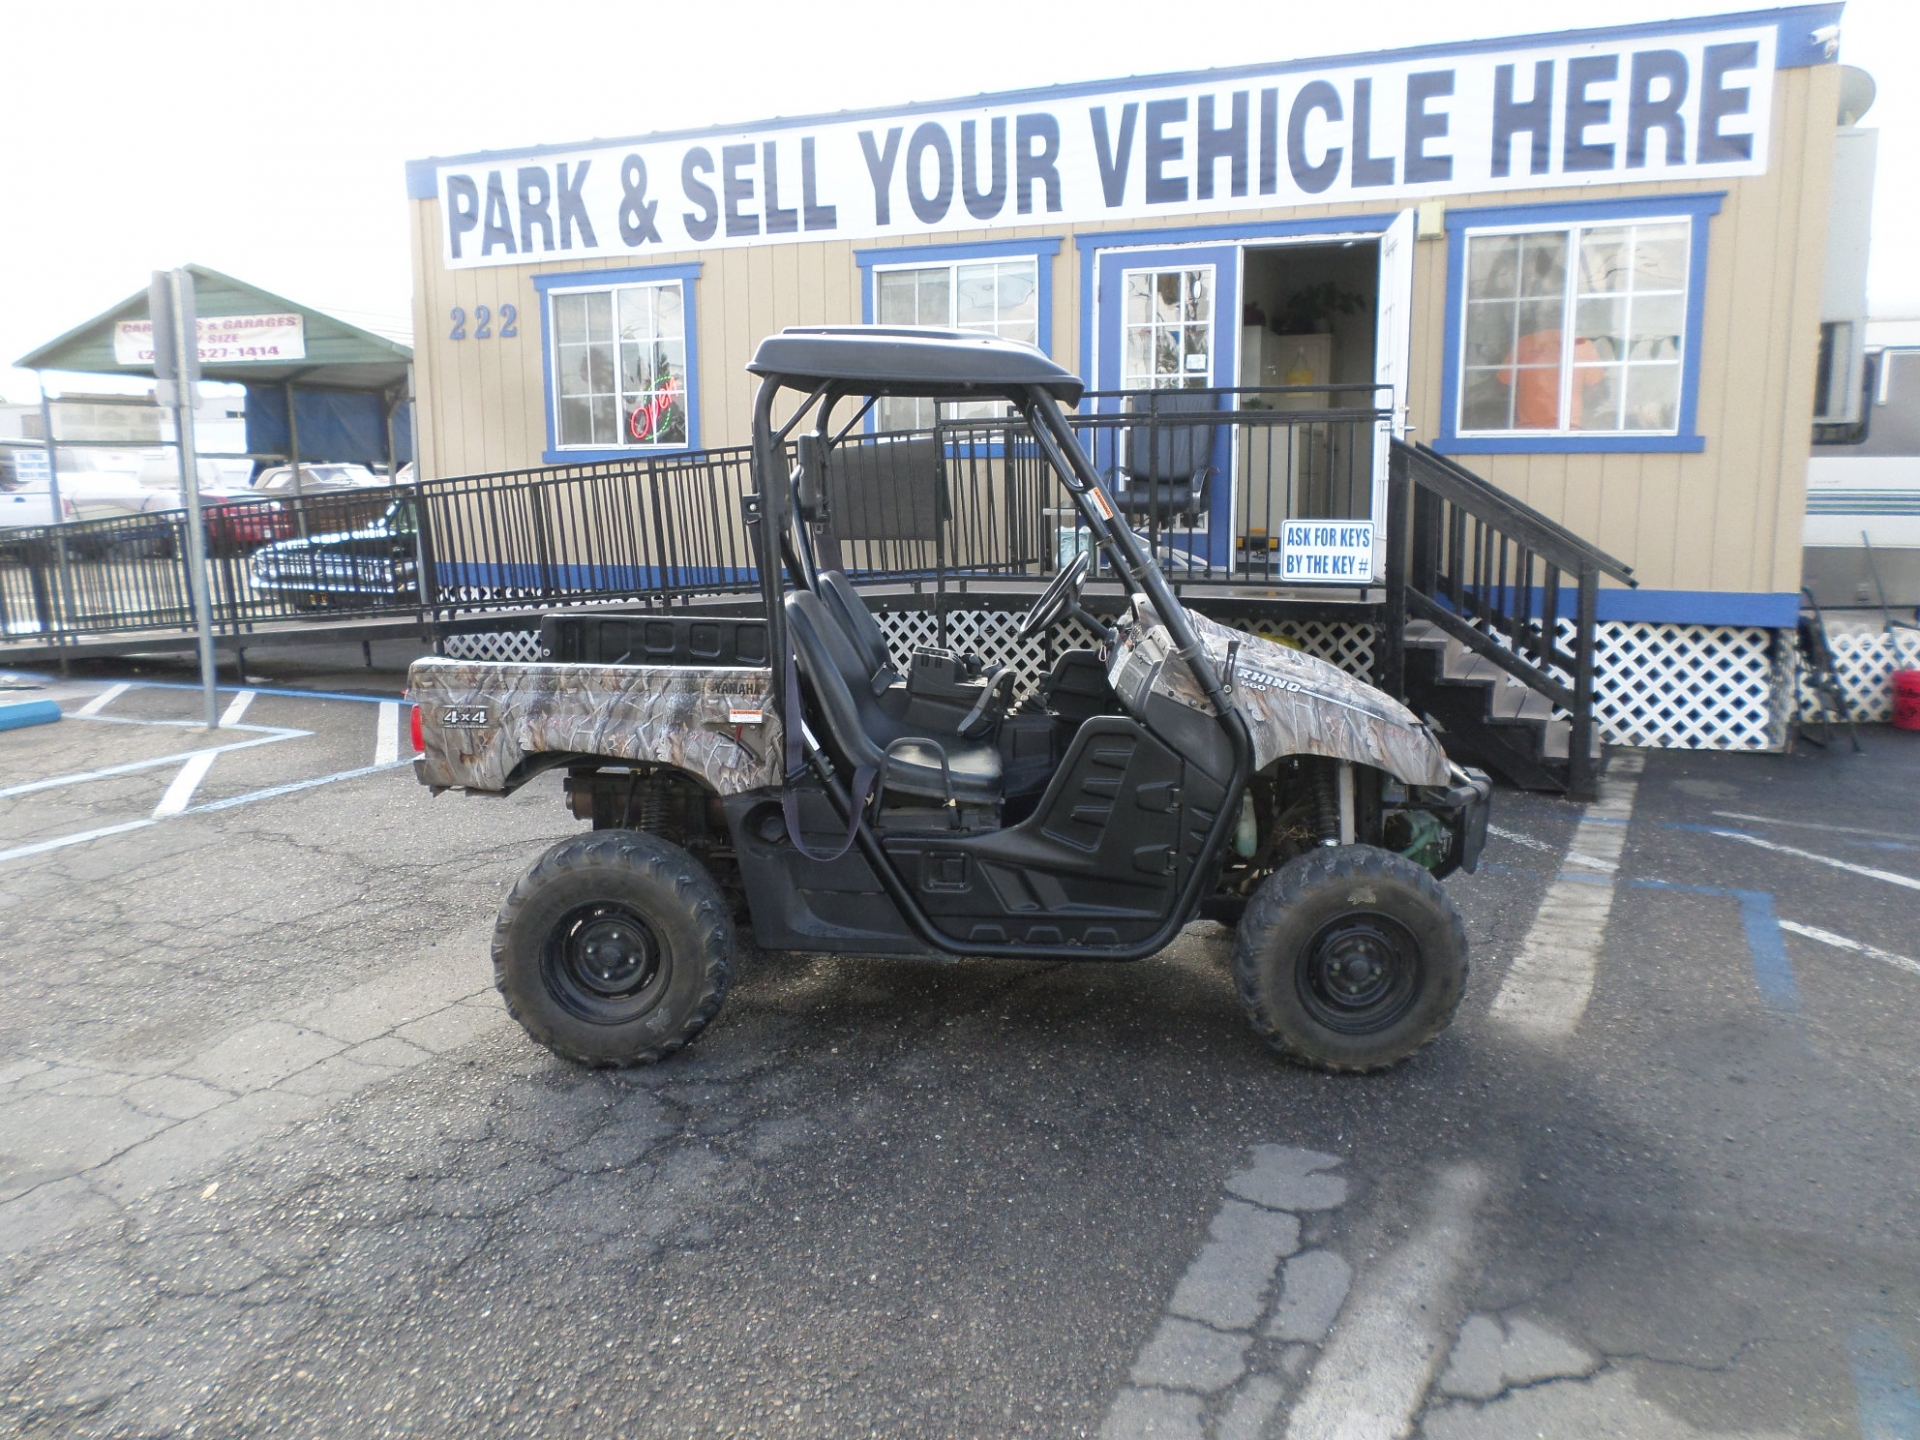 Car for sale: 1986 Yamaha Golf Cart in Lodi Stockton CA - Lodi Park Rhino Golf Carts For Sale on rhino electric golf trolley, rhino quad, rhino utv, rhino rifle golf, rhino parts,